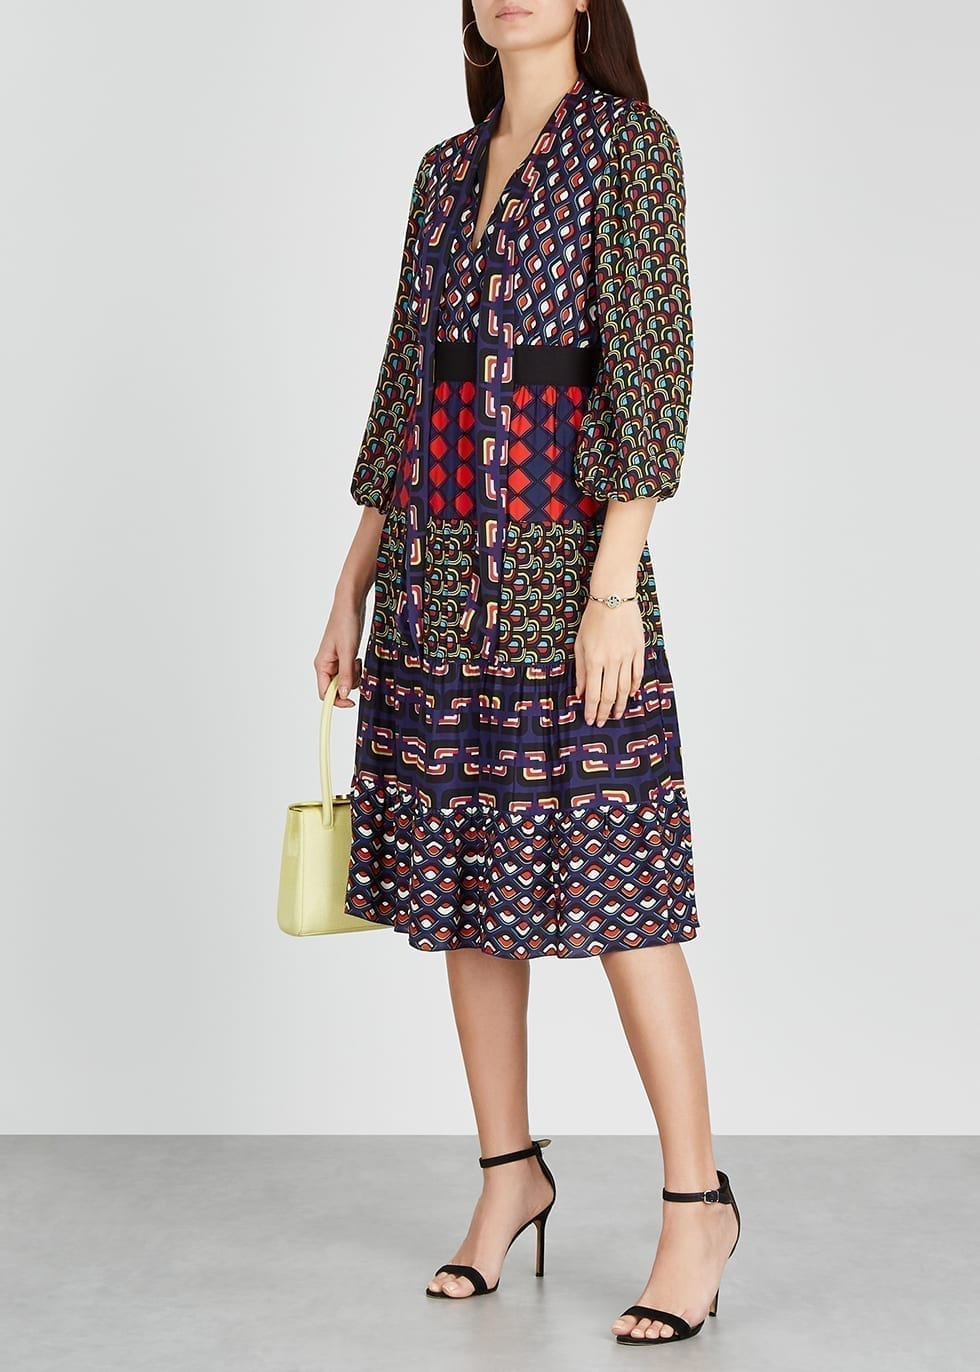 ALICE + OLIVIA Karolina Printed Midi Dress